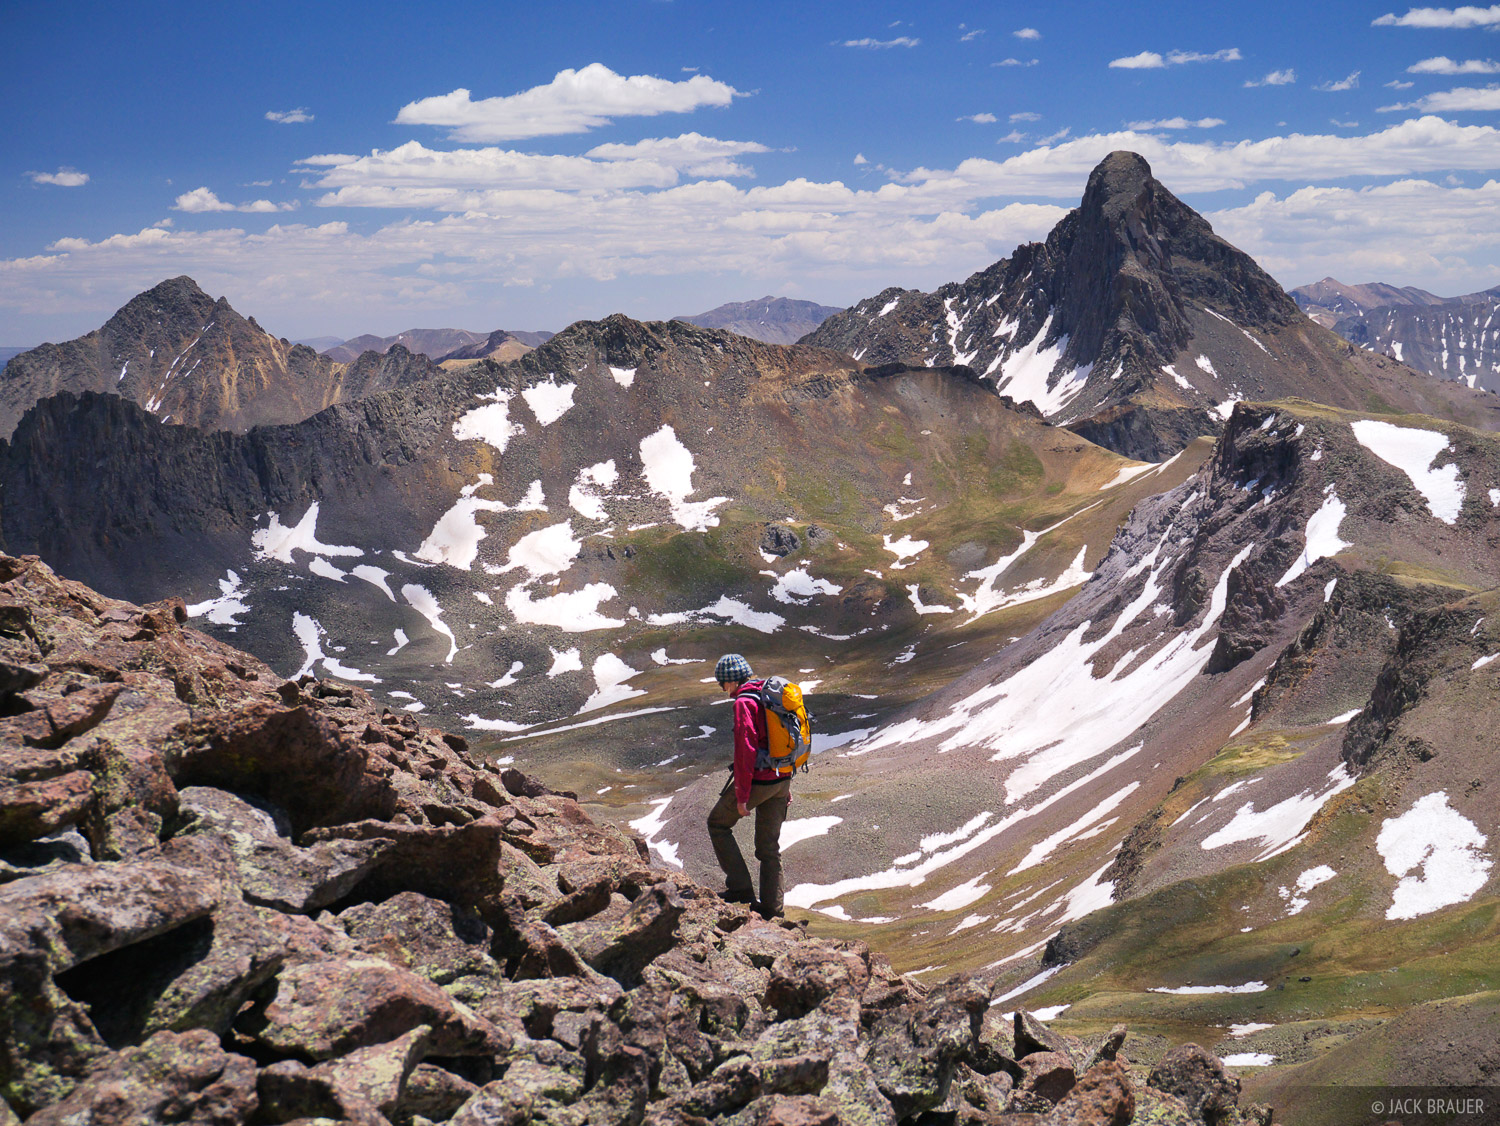 Redcliff, Wetterhorn Peak, hiking, June, Uncompahgre Wilderness, Colorado, photo